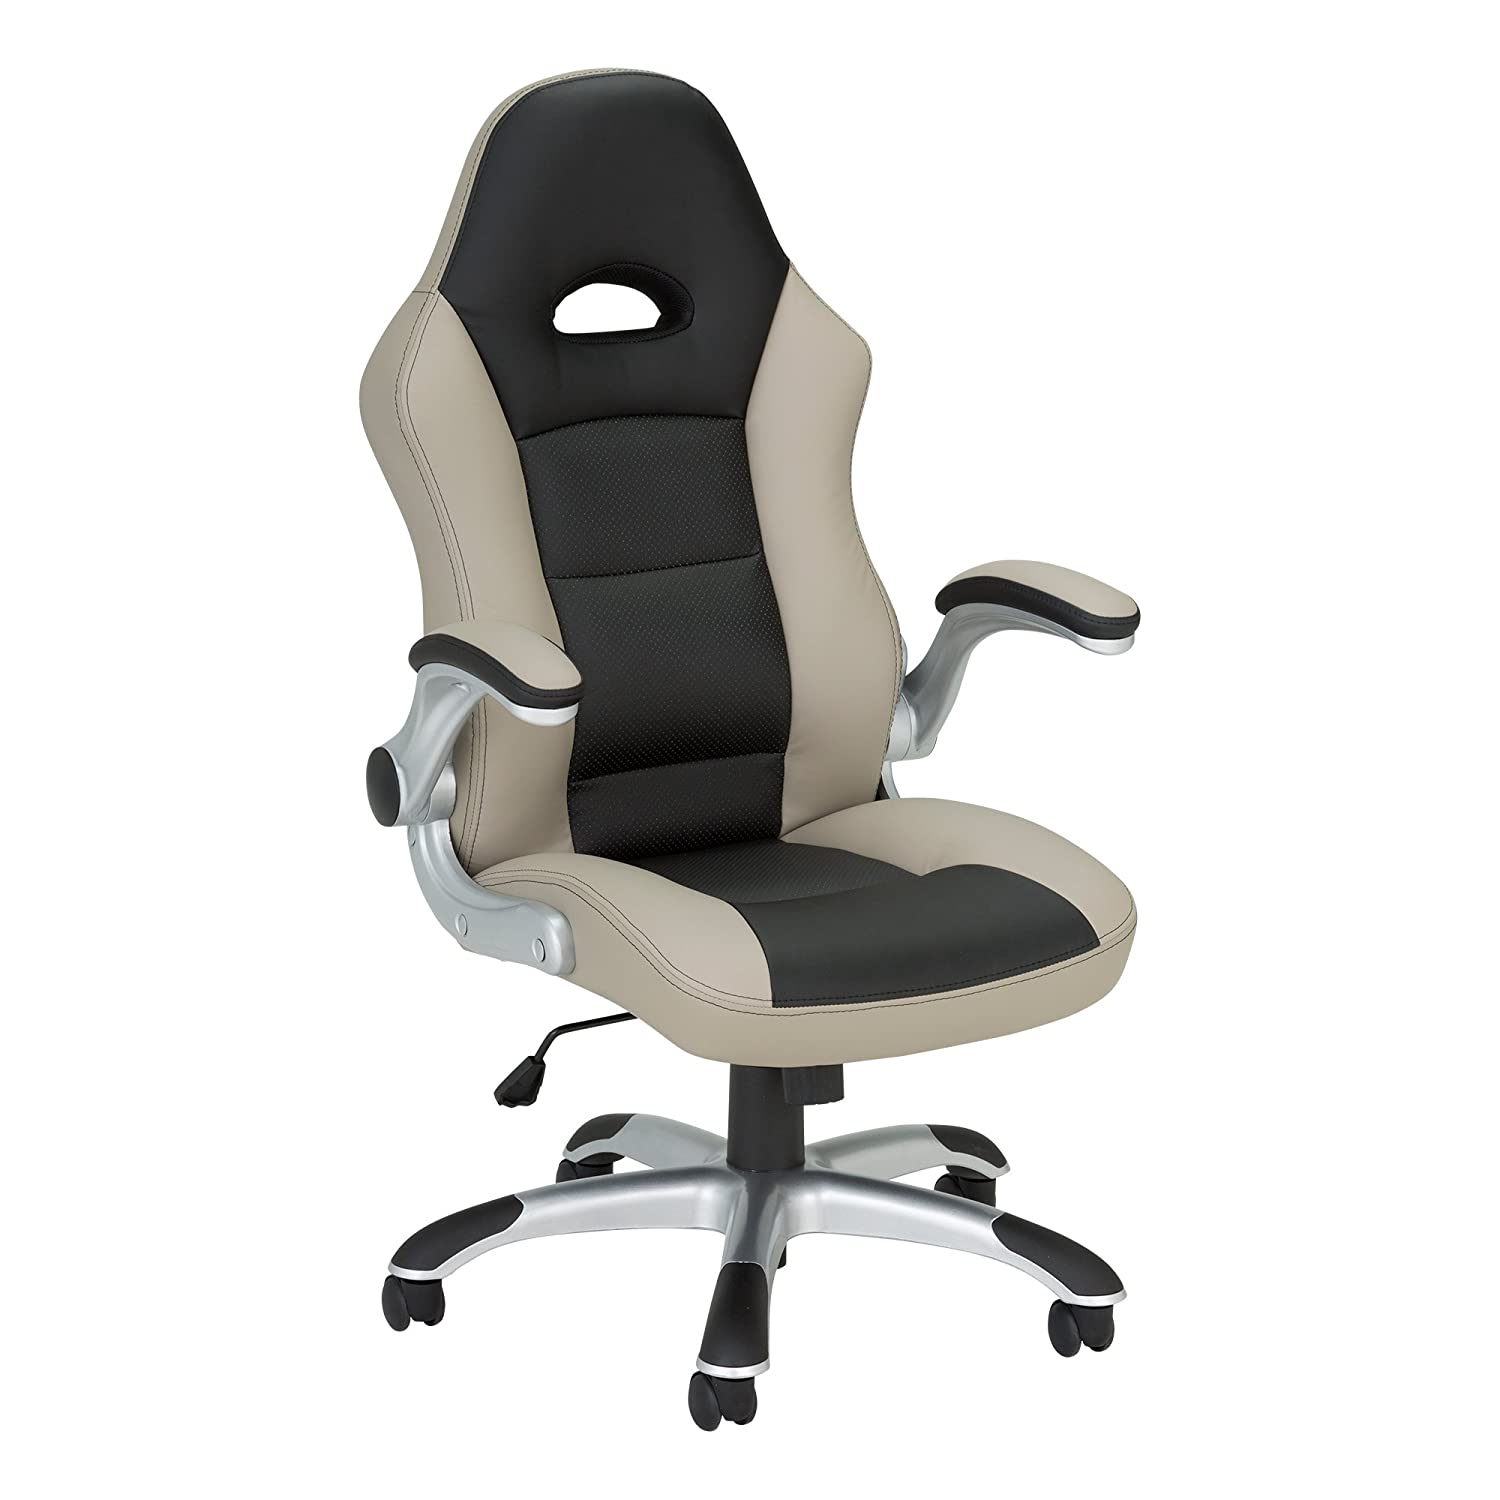 SkyLab Performance Seating Computer Gaming and Office Chair by SkyLab Performance Seating F.C, Champagne/Black ALT-OUG1006-SO